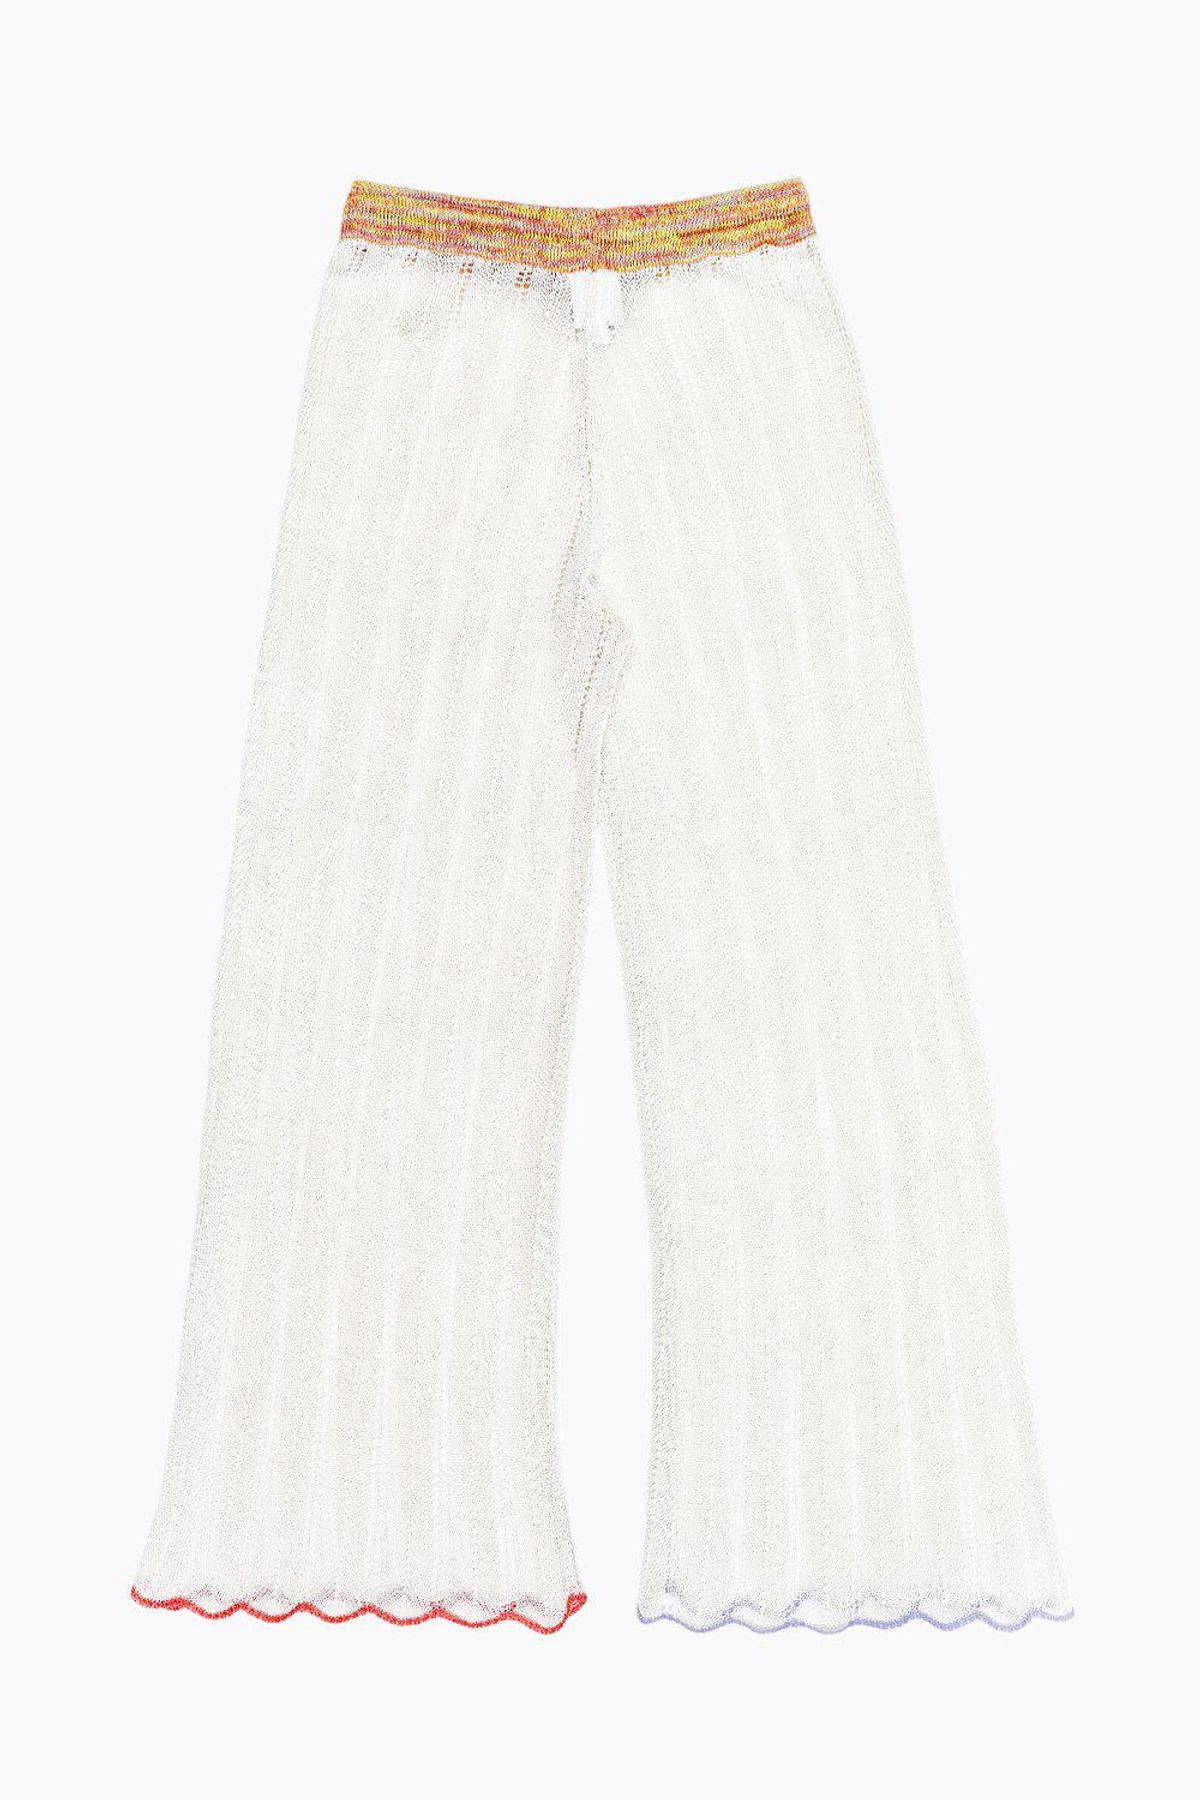 Honey Pant in Ivory Cotton Cord